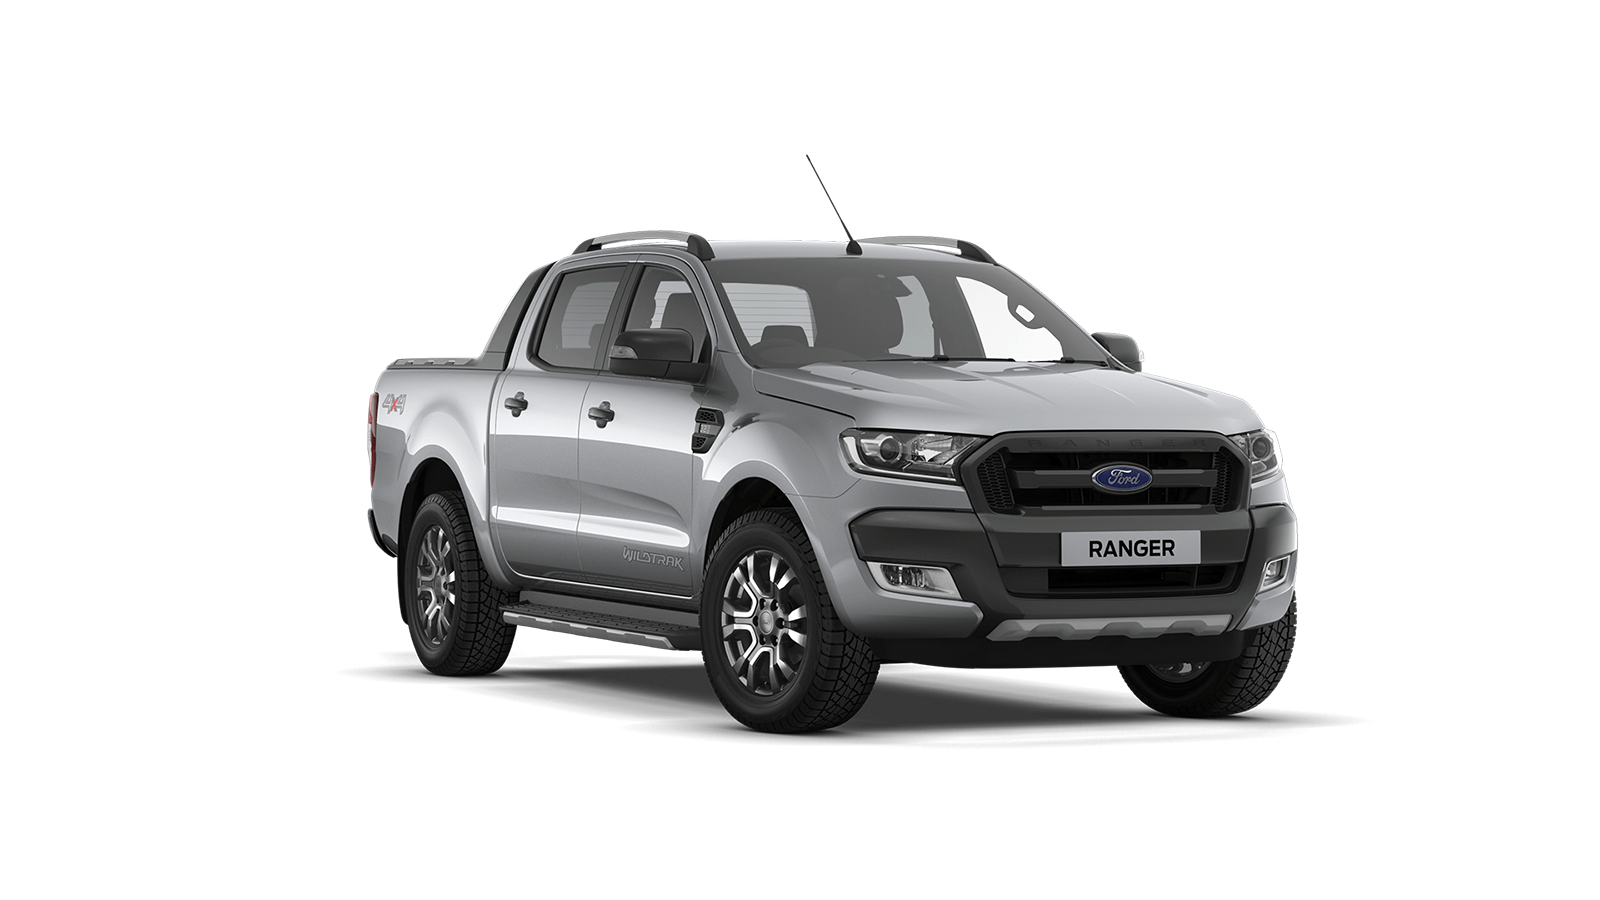 RANGER Wildtrak Double Cab in Moondust Silver